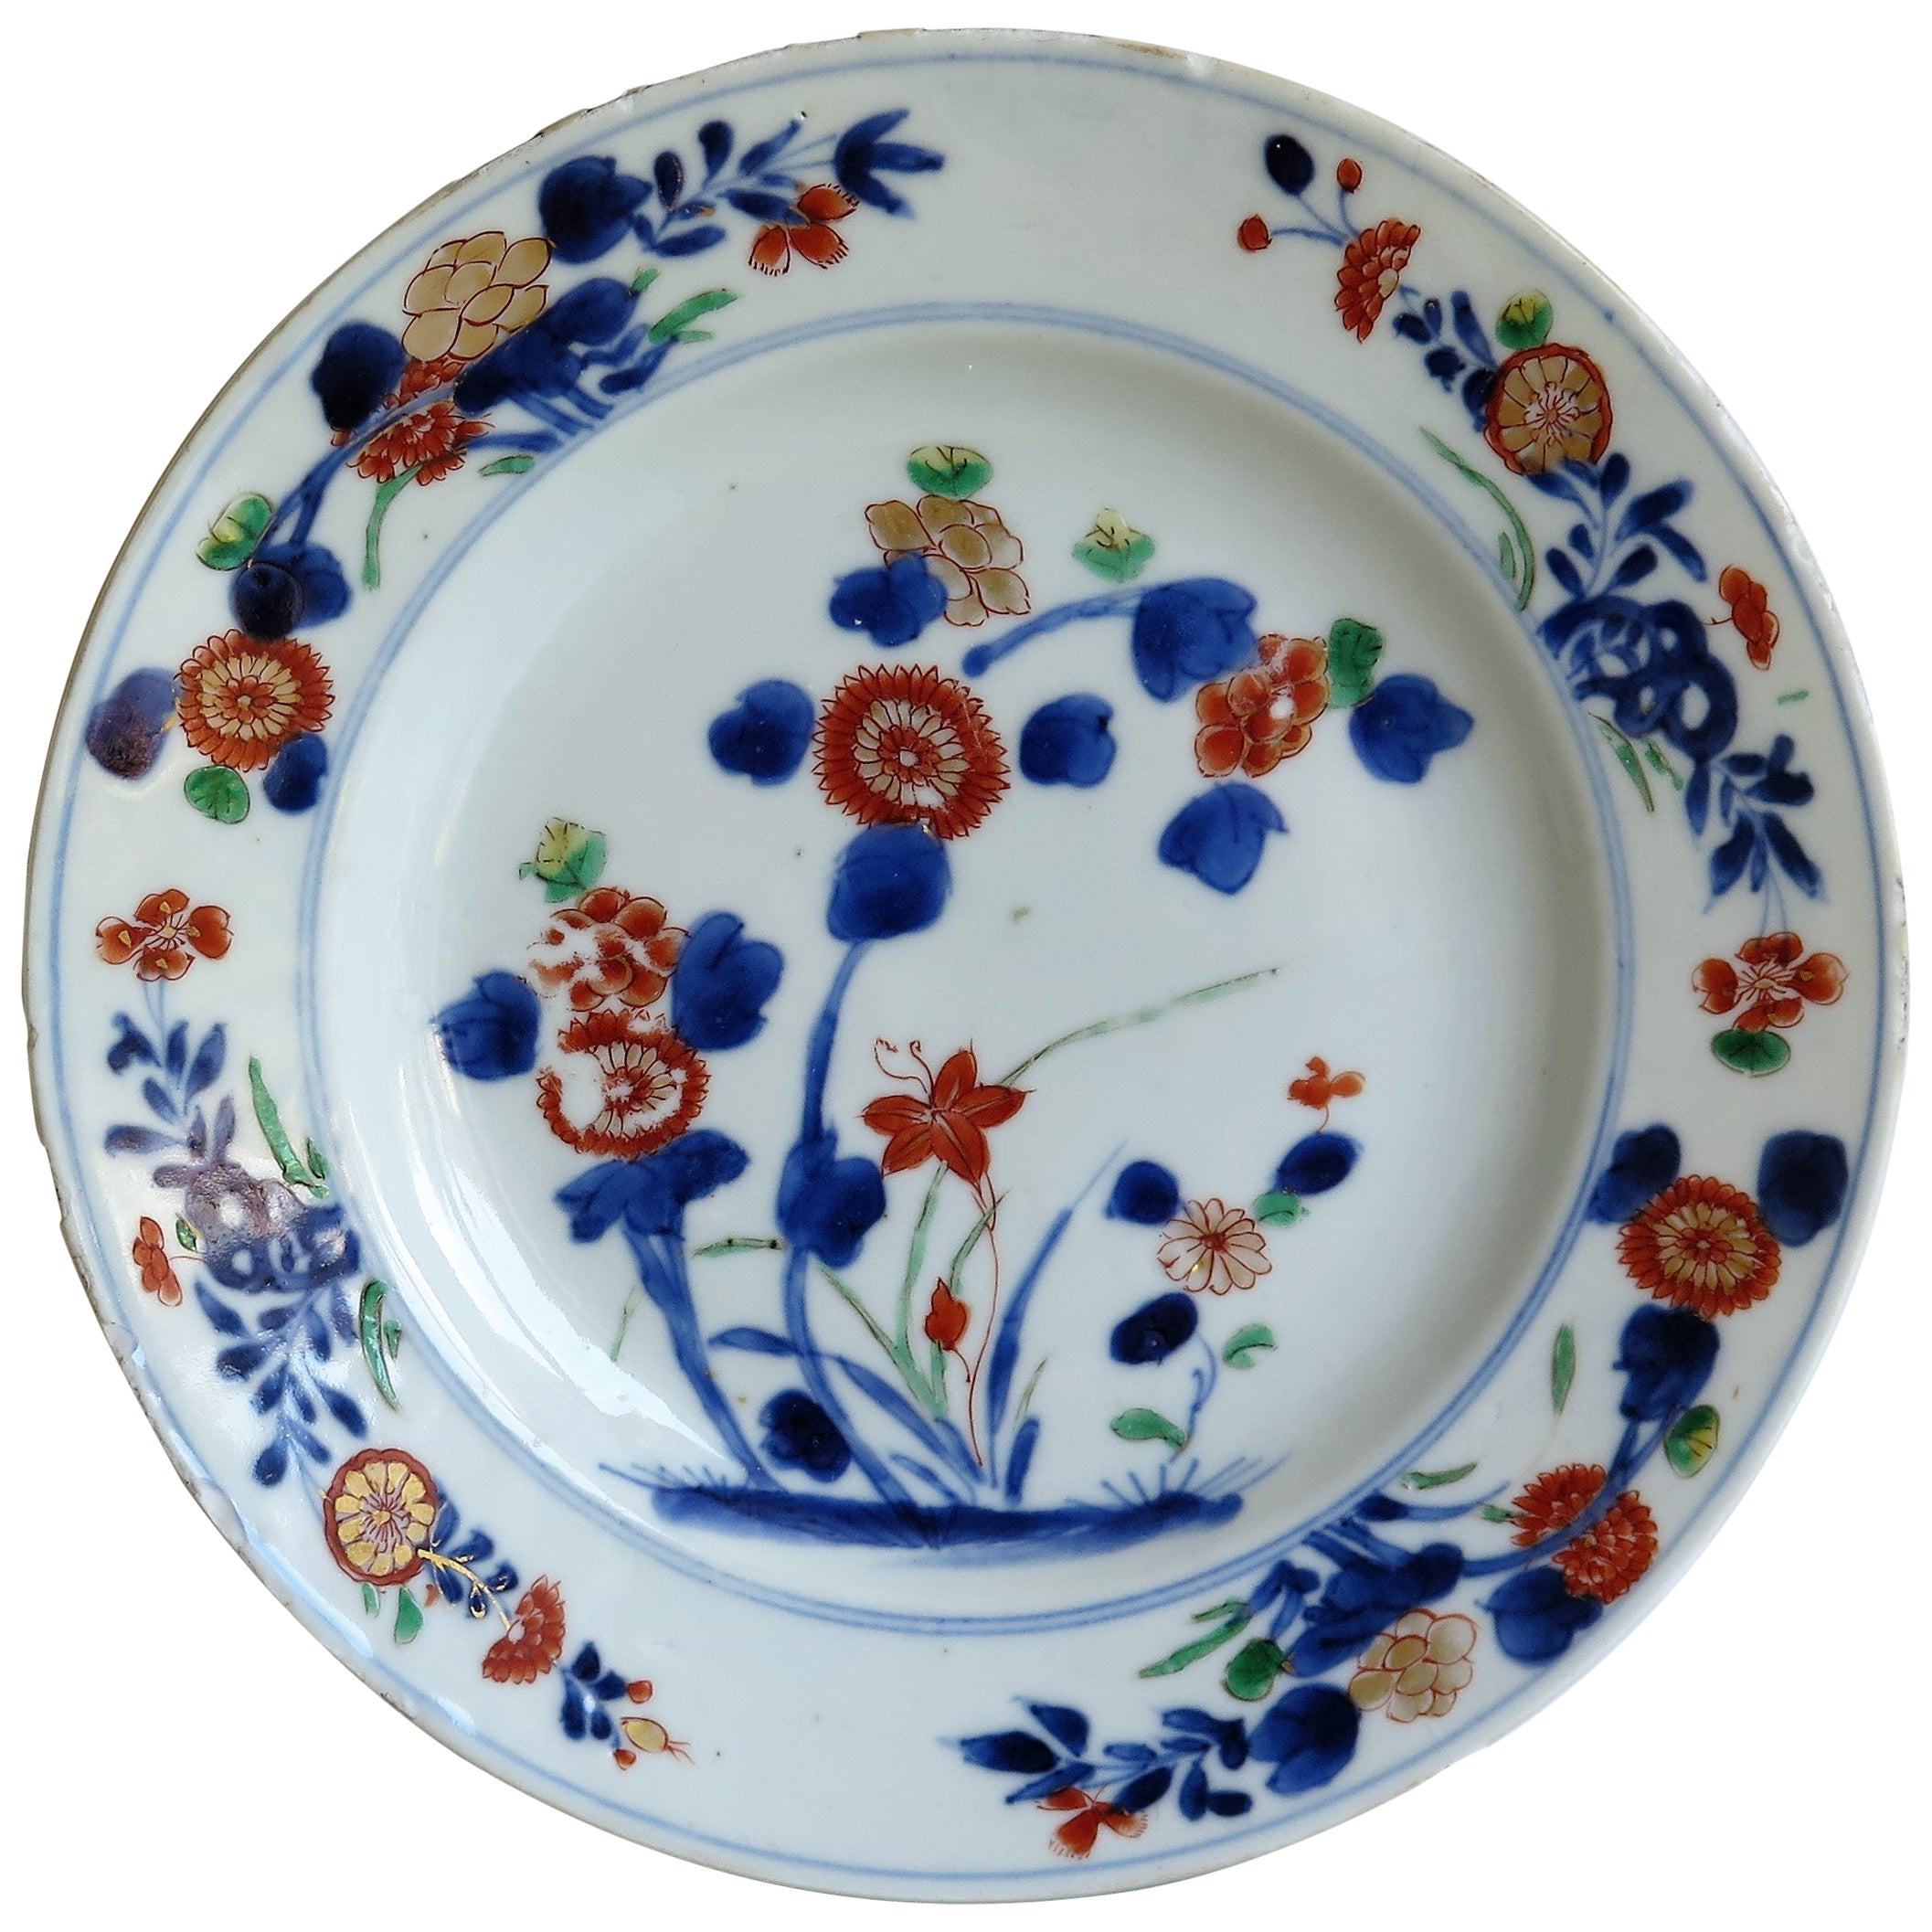 Chinese Qing Kangxi period Plate porcelain 5-Color Hand Painted, Circa 1700